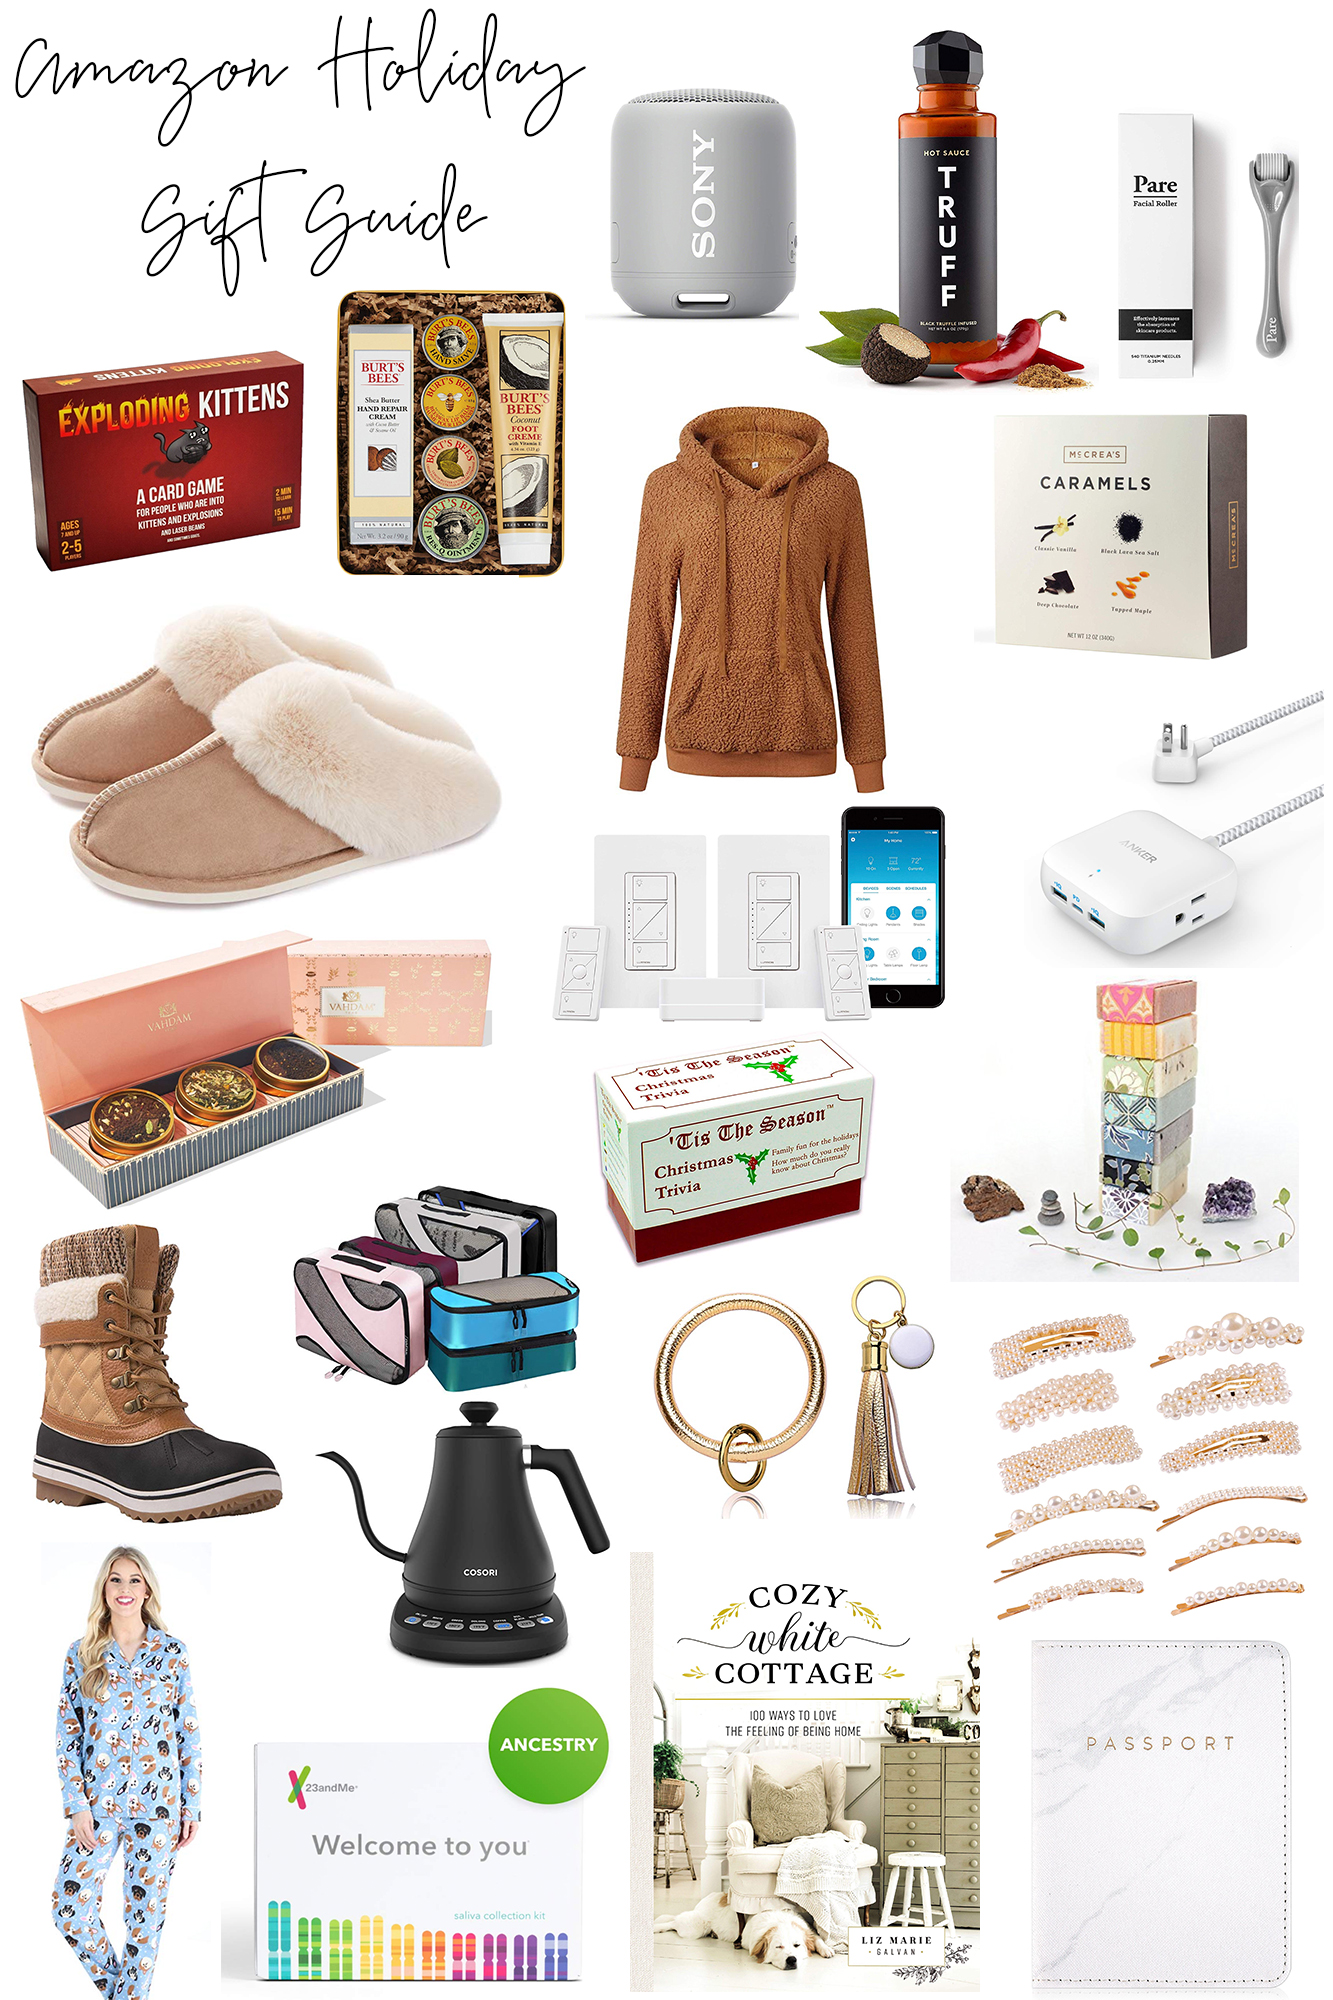 Amazon Christmas Gift Guide 2019 - The best holiday presents on Amazon for the holidays. SO many of these items are 2-day shipping & under $50.